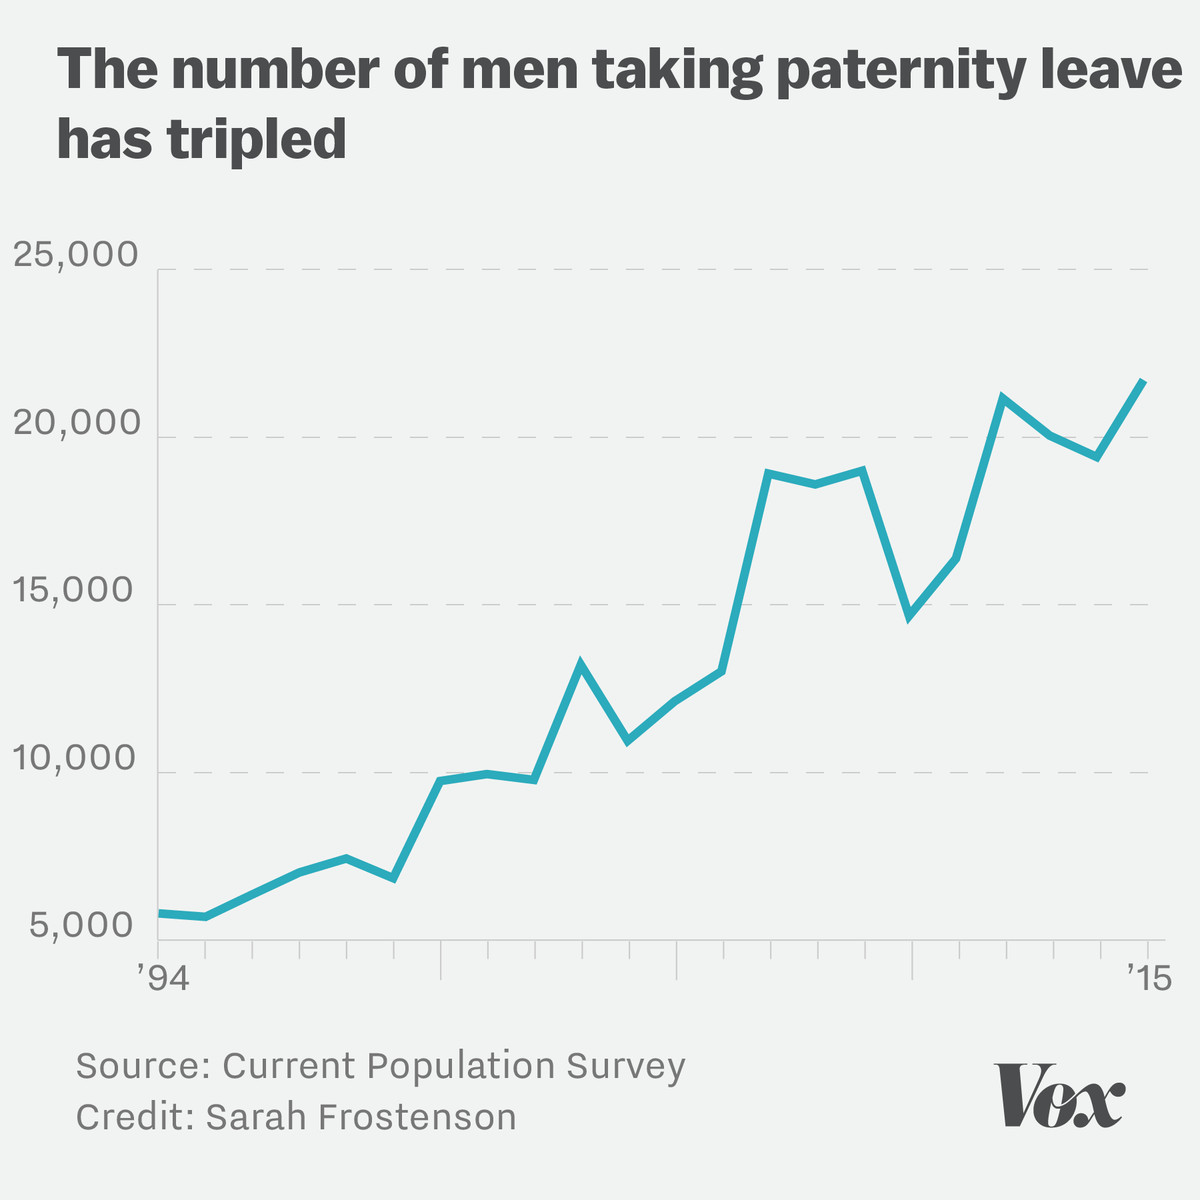 Chart showing the number of men who have taken paternity leave in the last 20 years has tripled